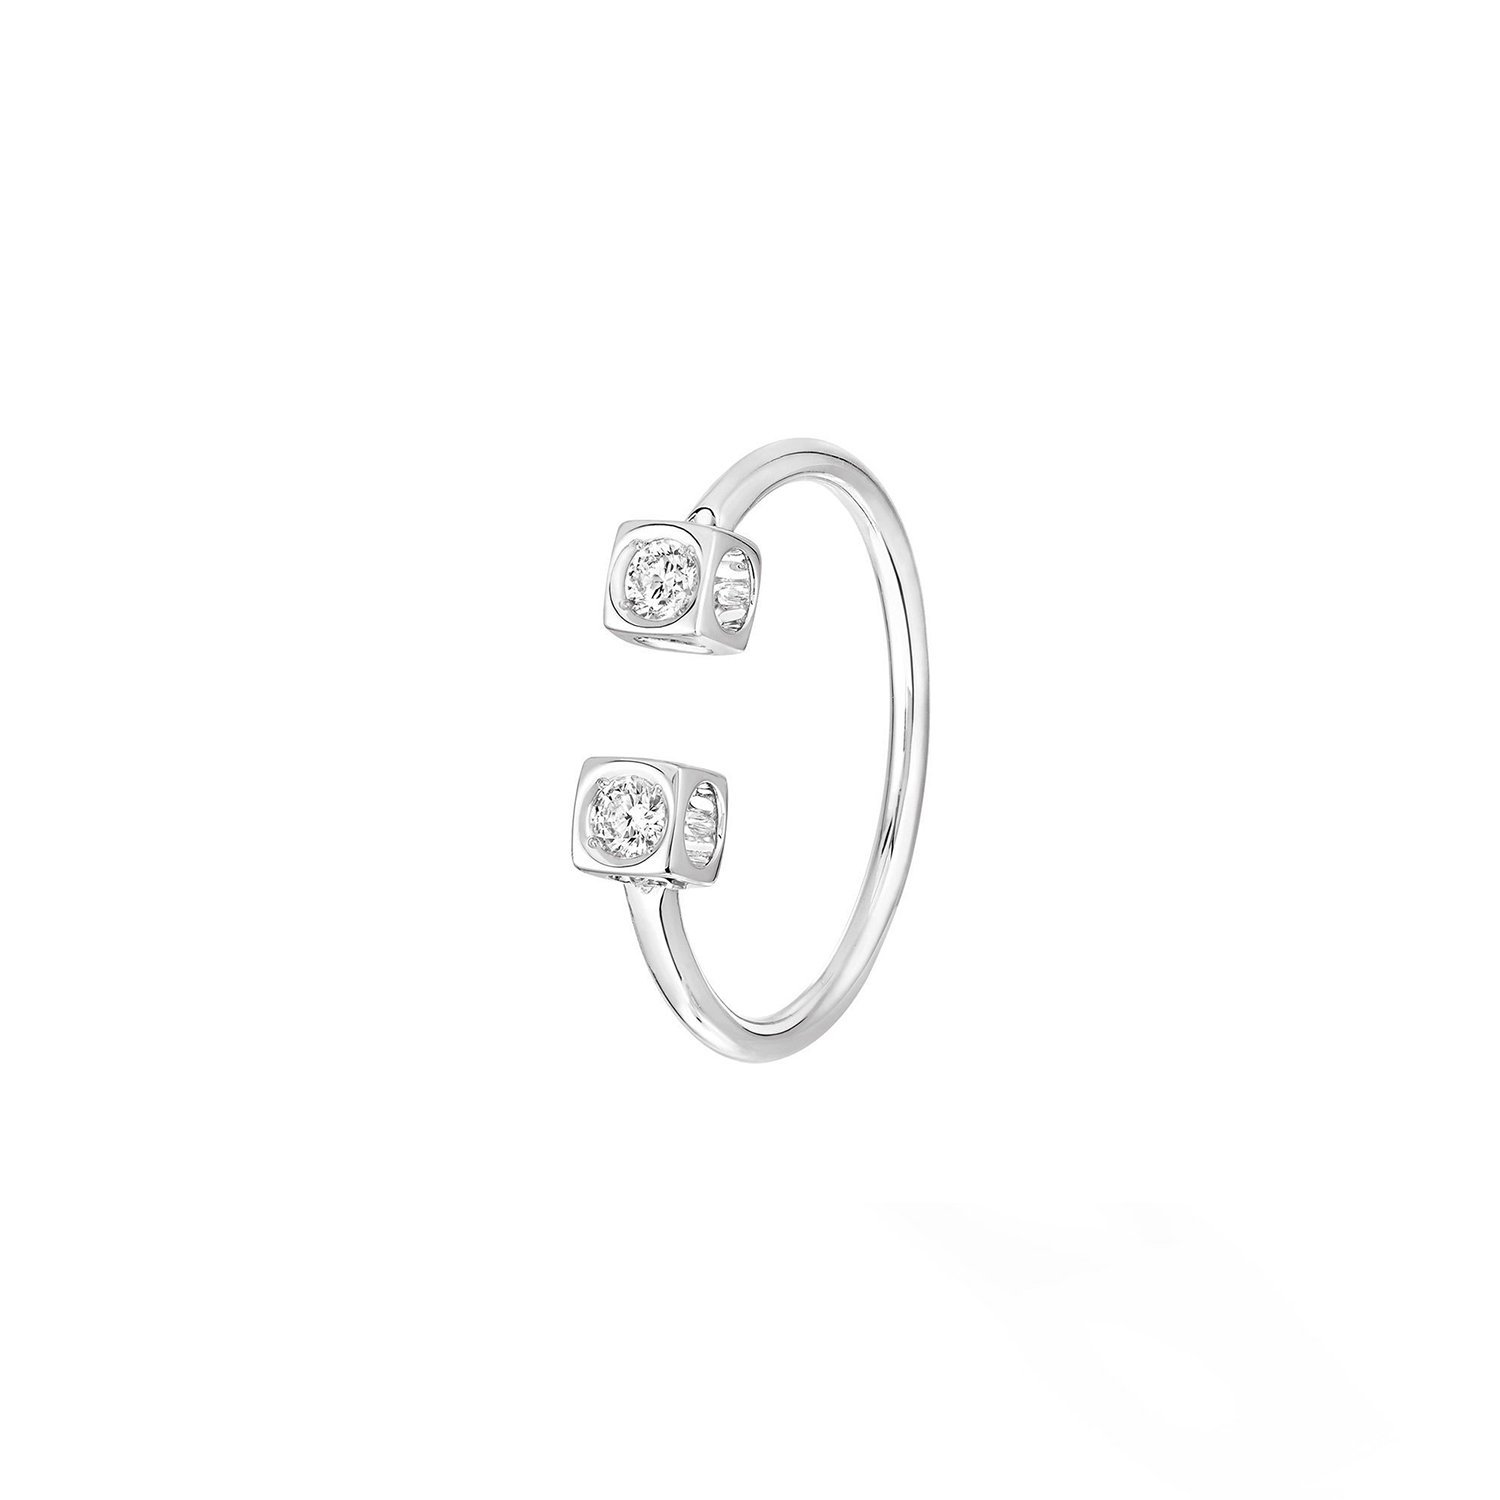 Bague dinh van Le Cube Diamant en or blanc et diamants vue 1